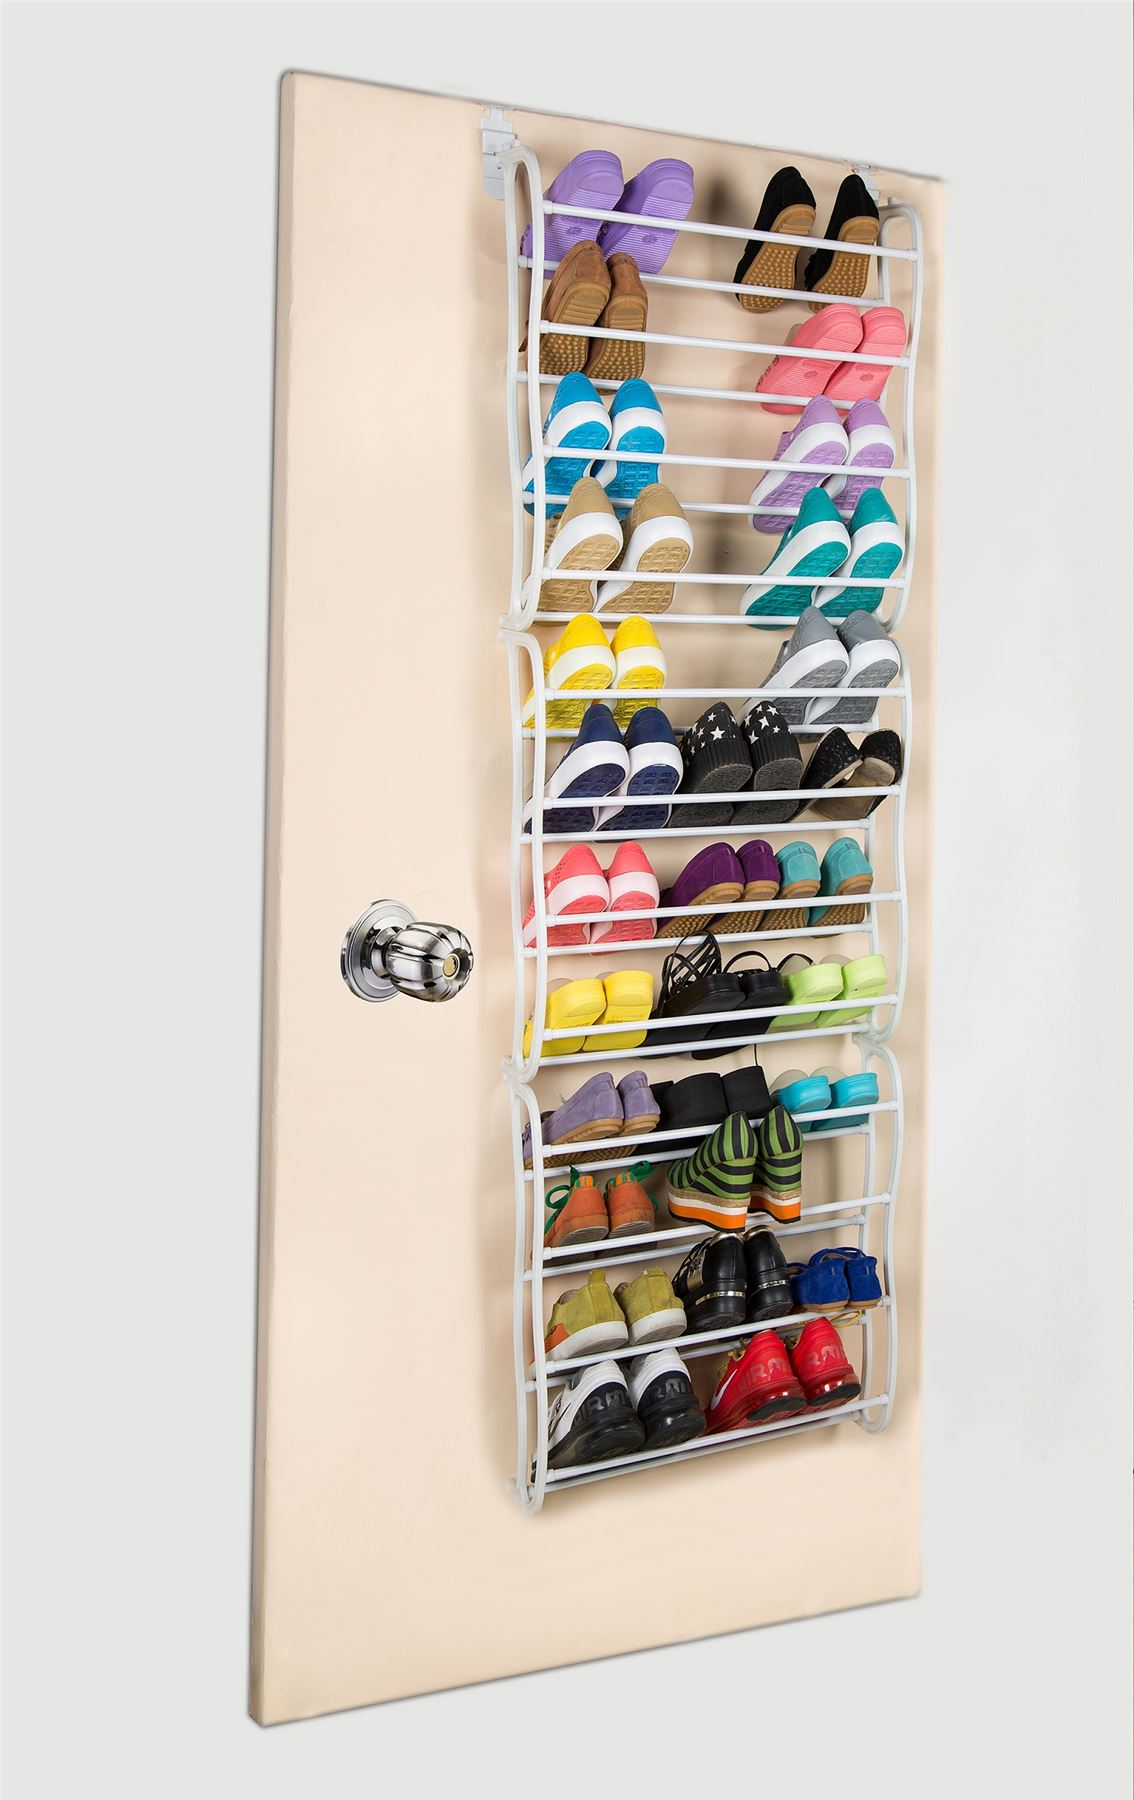 sentinel vinsani 12 tier over the door shoe rack hanging organiser 36 pair white - Over The Door Shoe Rack